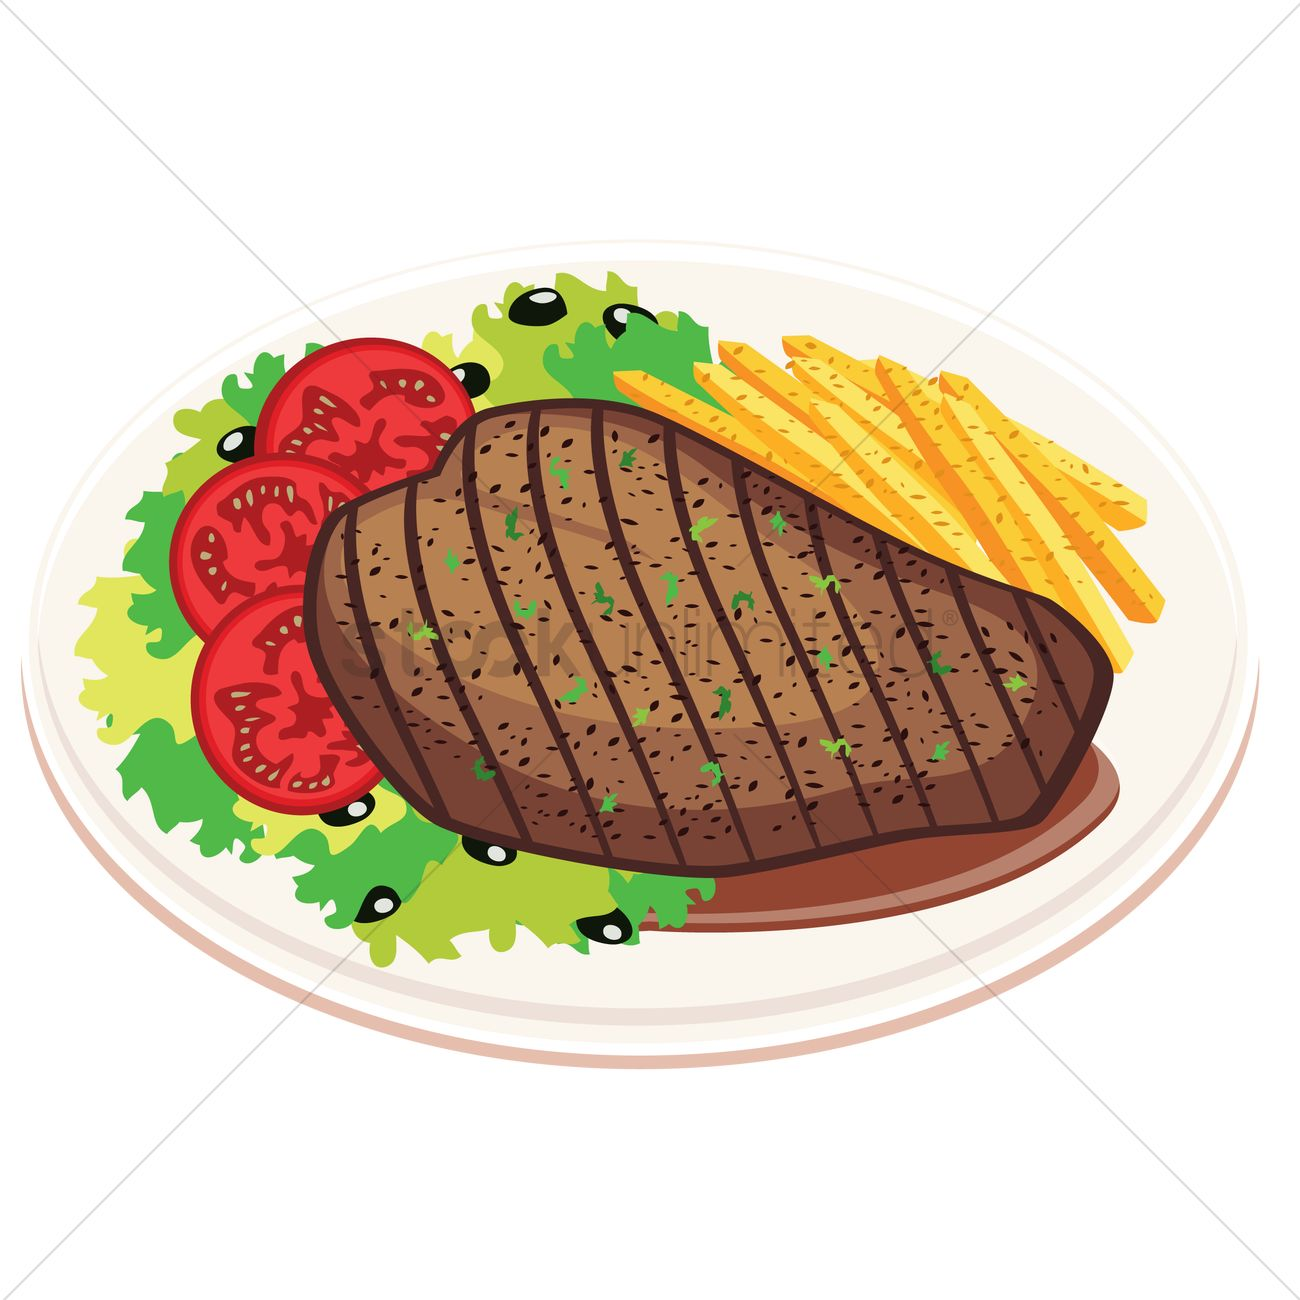 Grilled Steak With Fries And Salad Vector Image 1236546